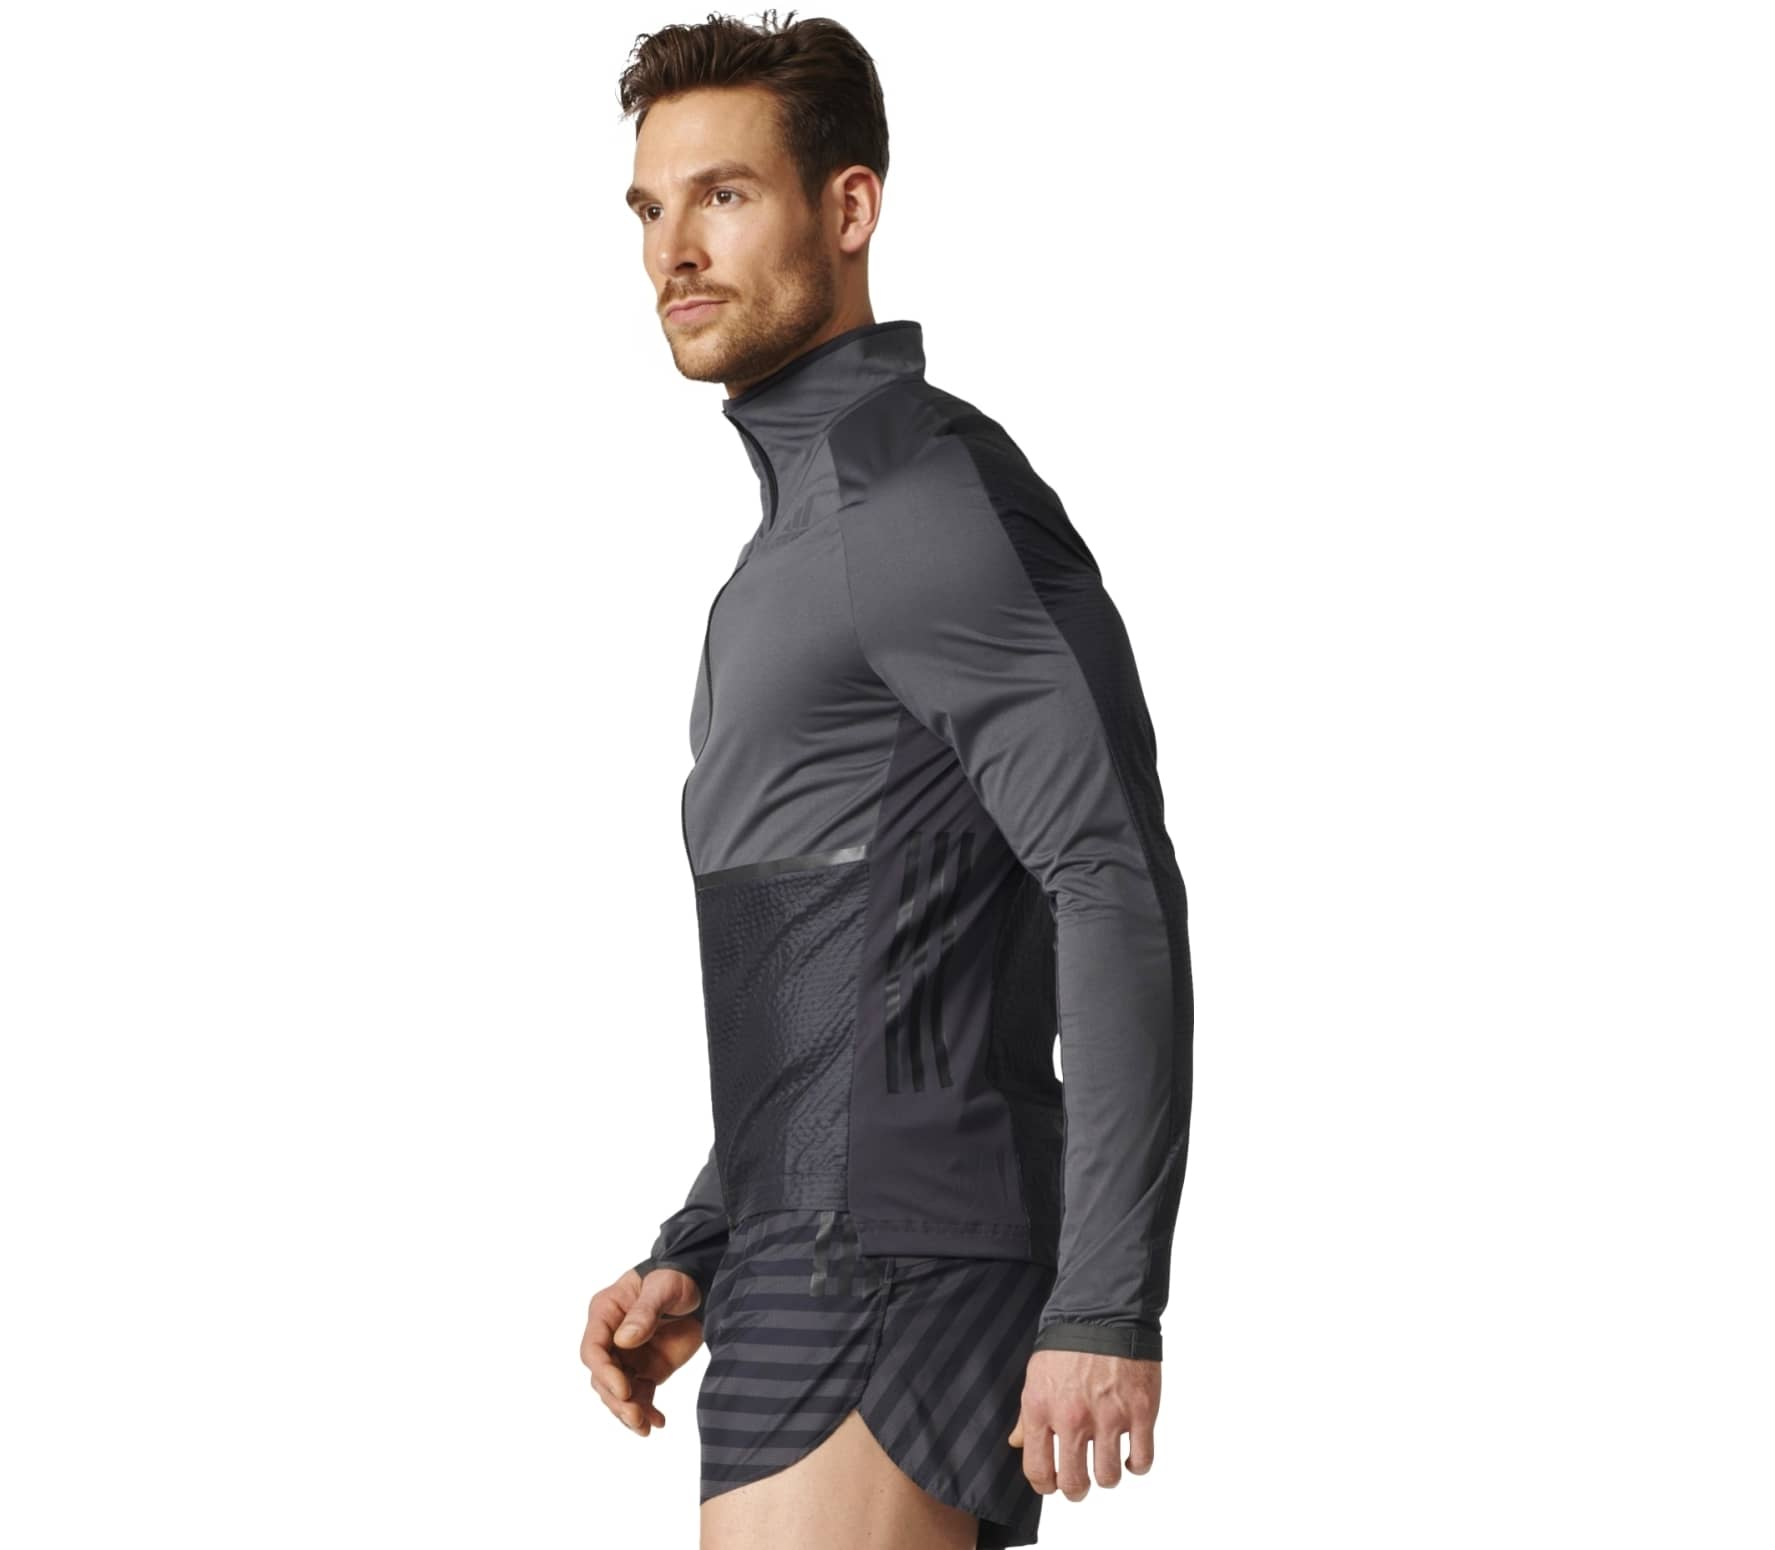 Men's Clothing White Comfortable And Easy To Wear Adidas Adizero Track Mens Running Jacket